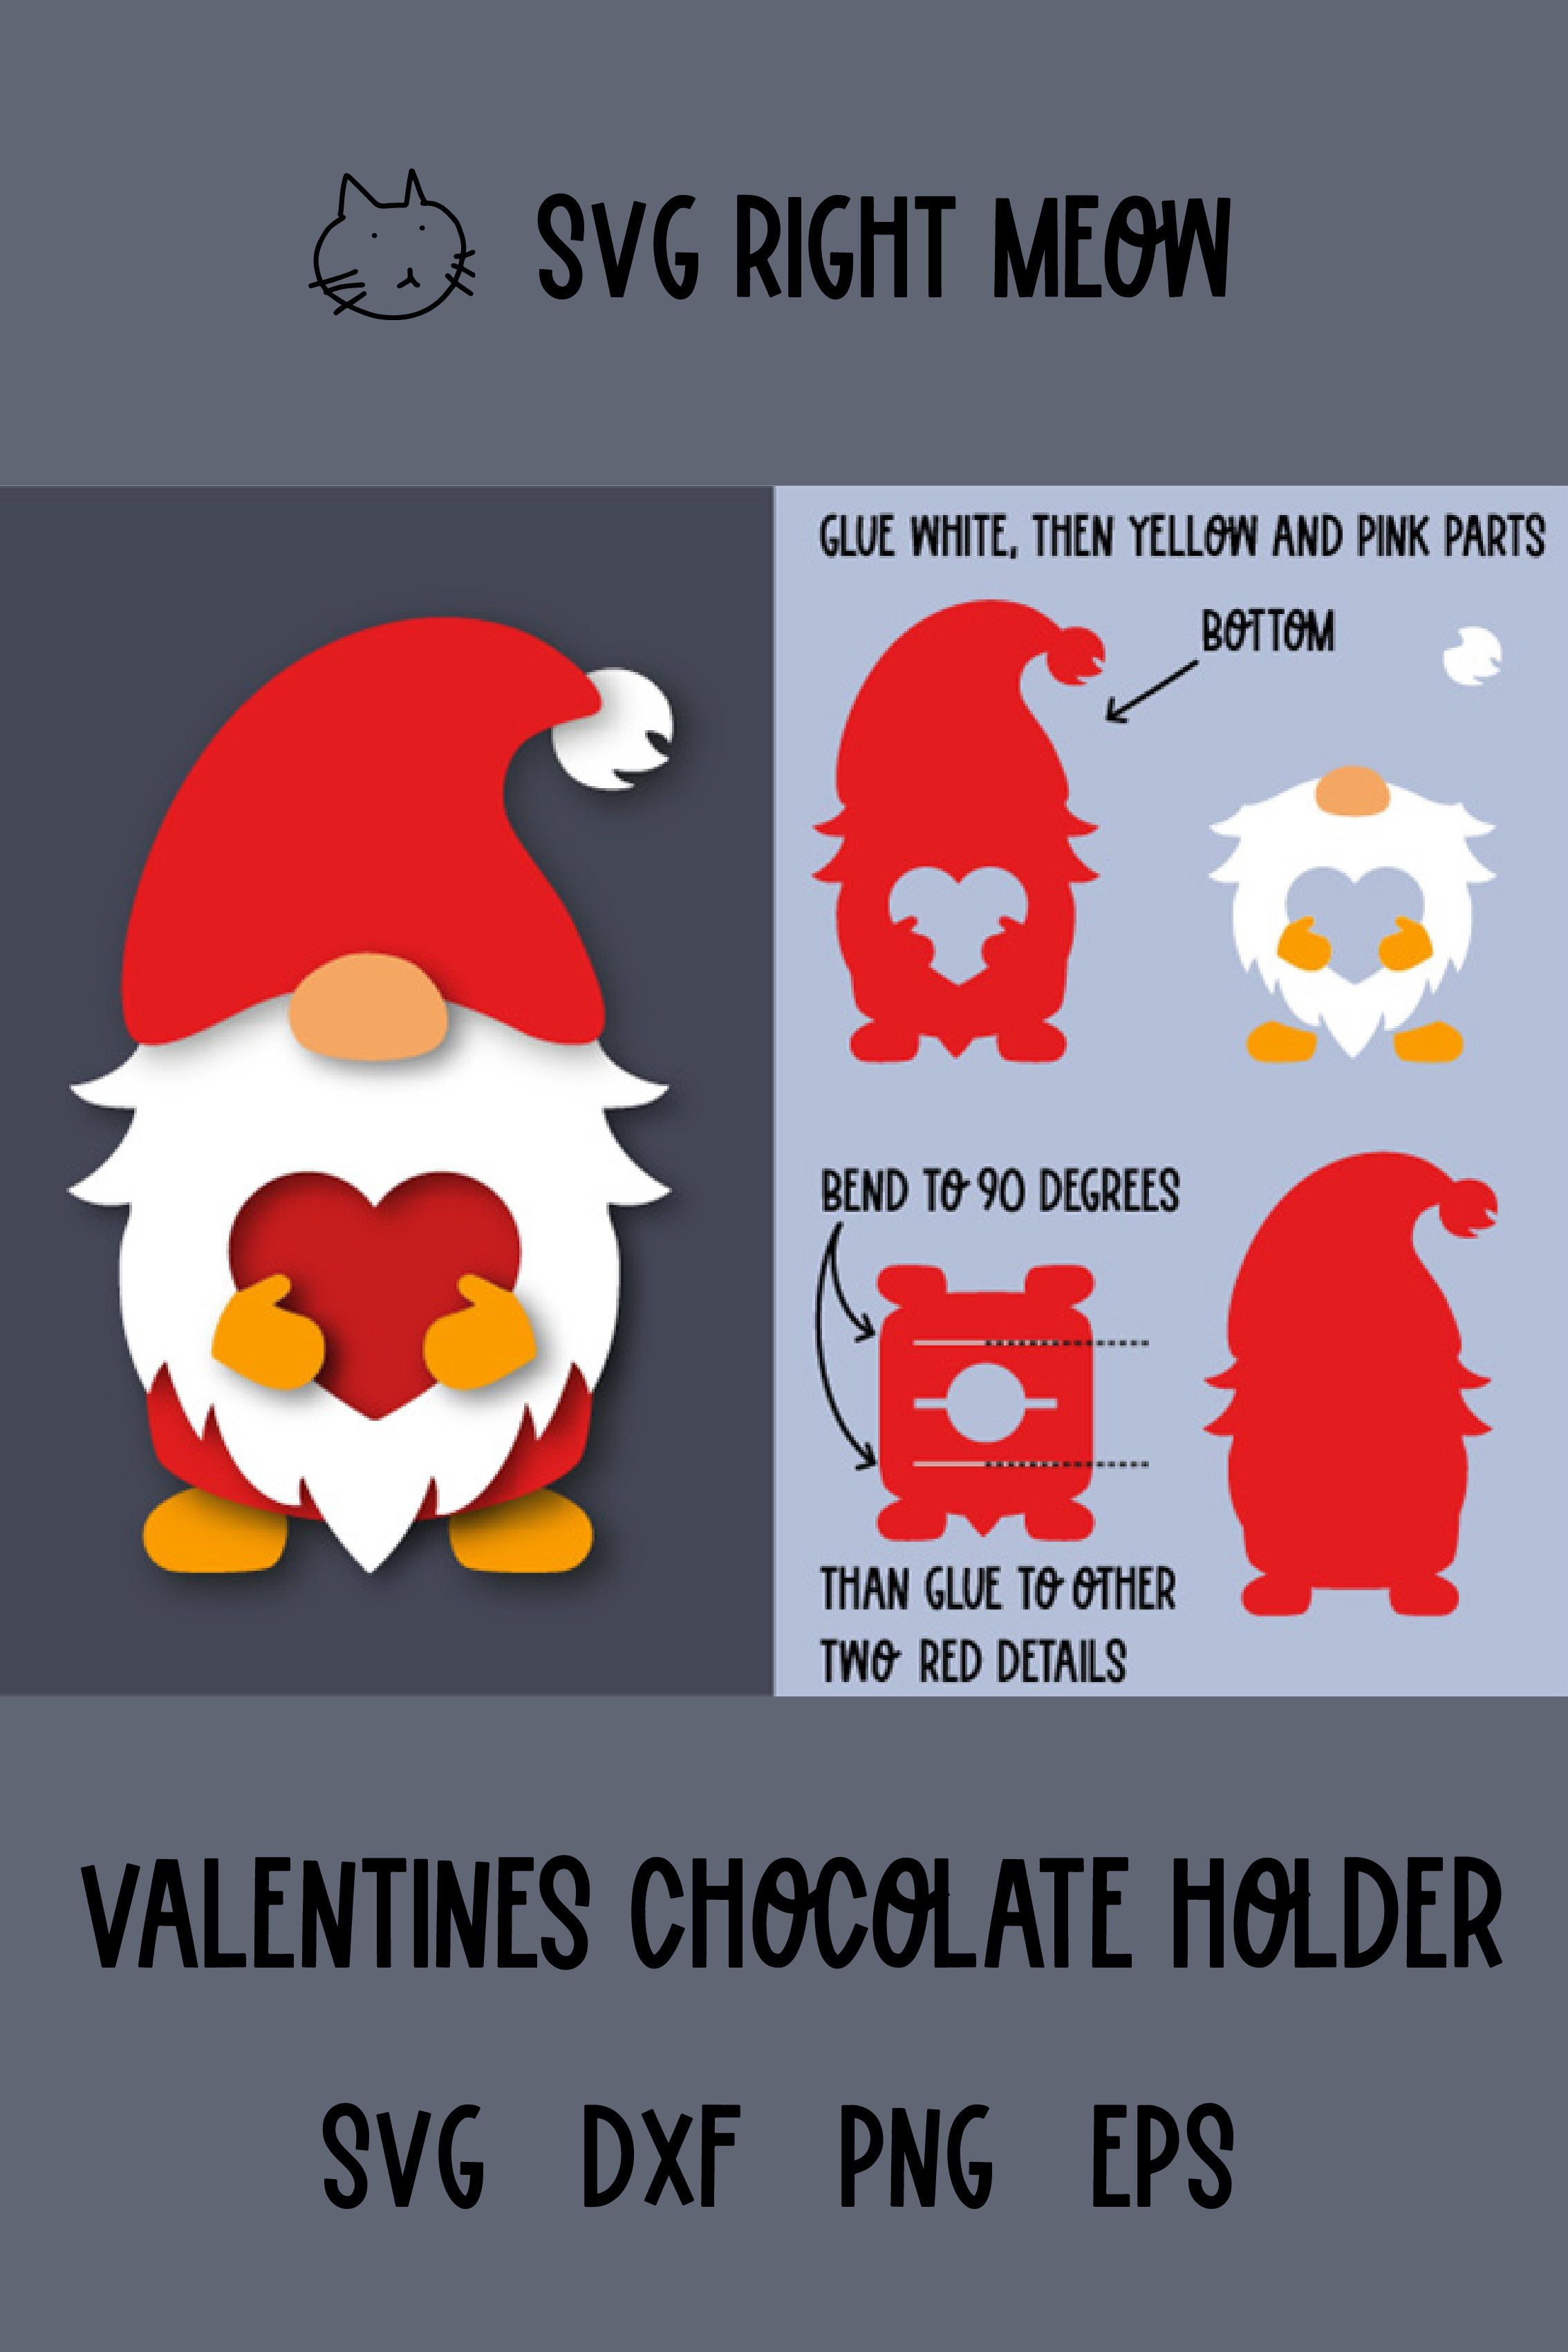 I Love You More Than Chocolate Sublimation Graphics Valentine Funny Cute Humor 95006 PNG Digital Image Instant Download